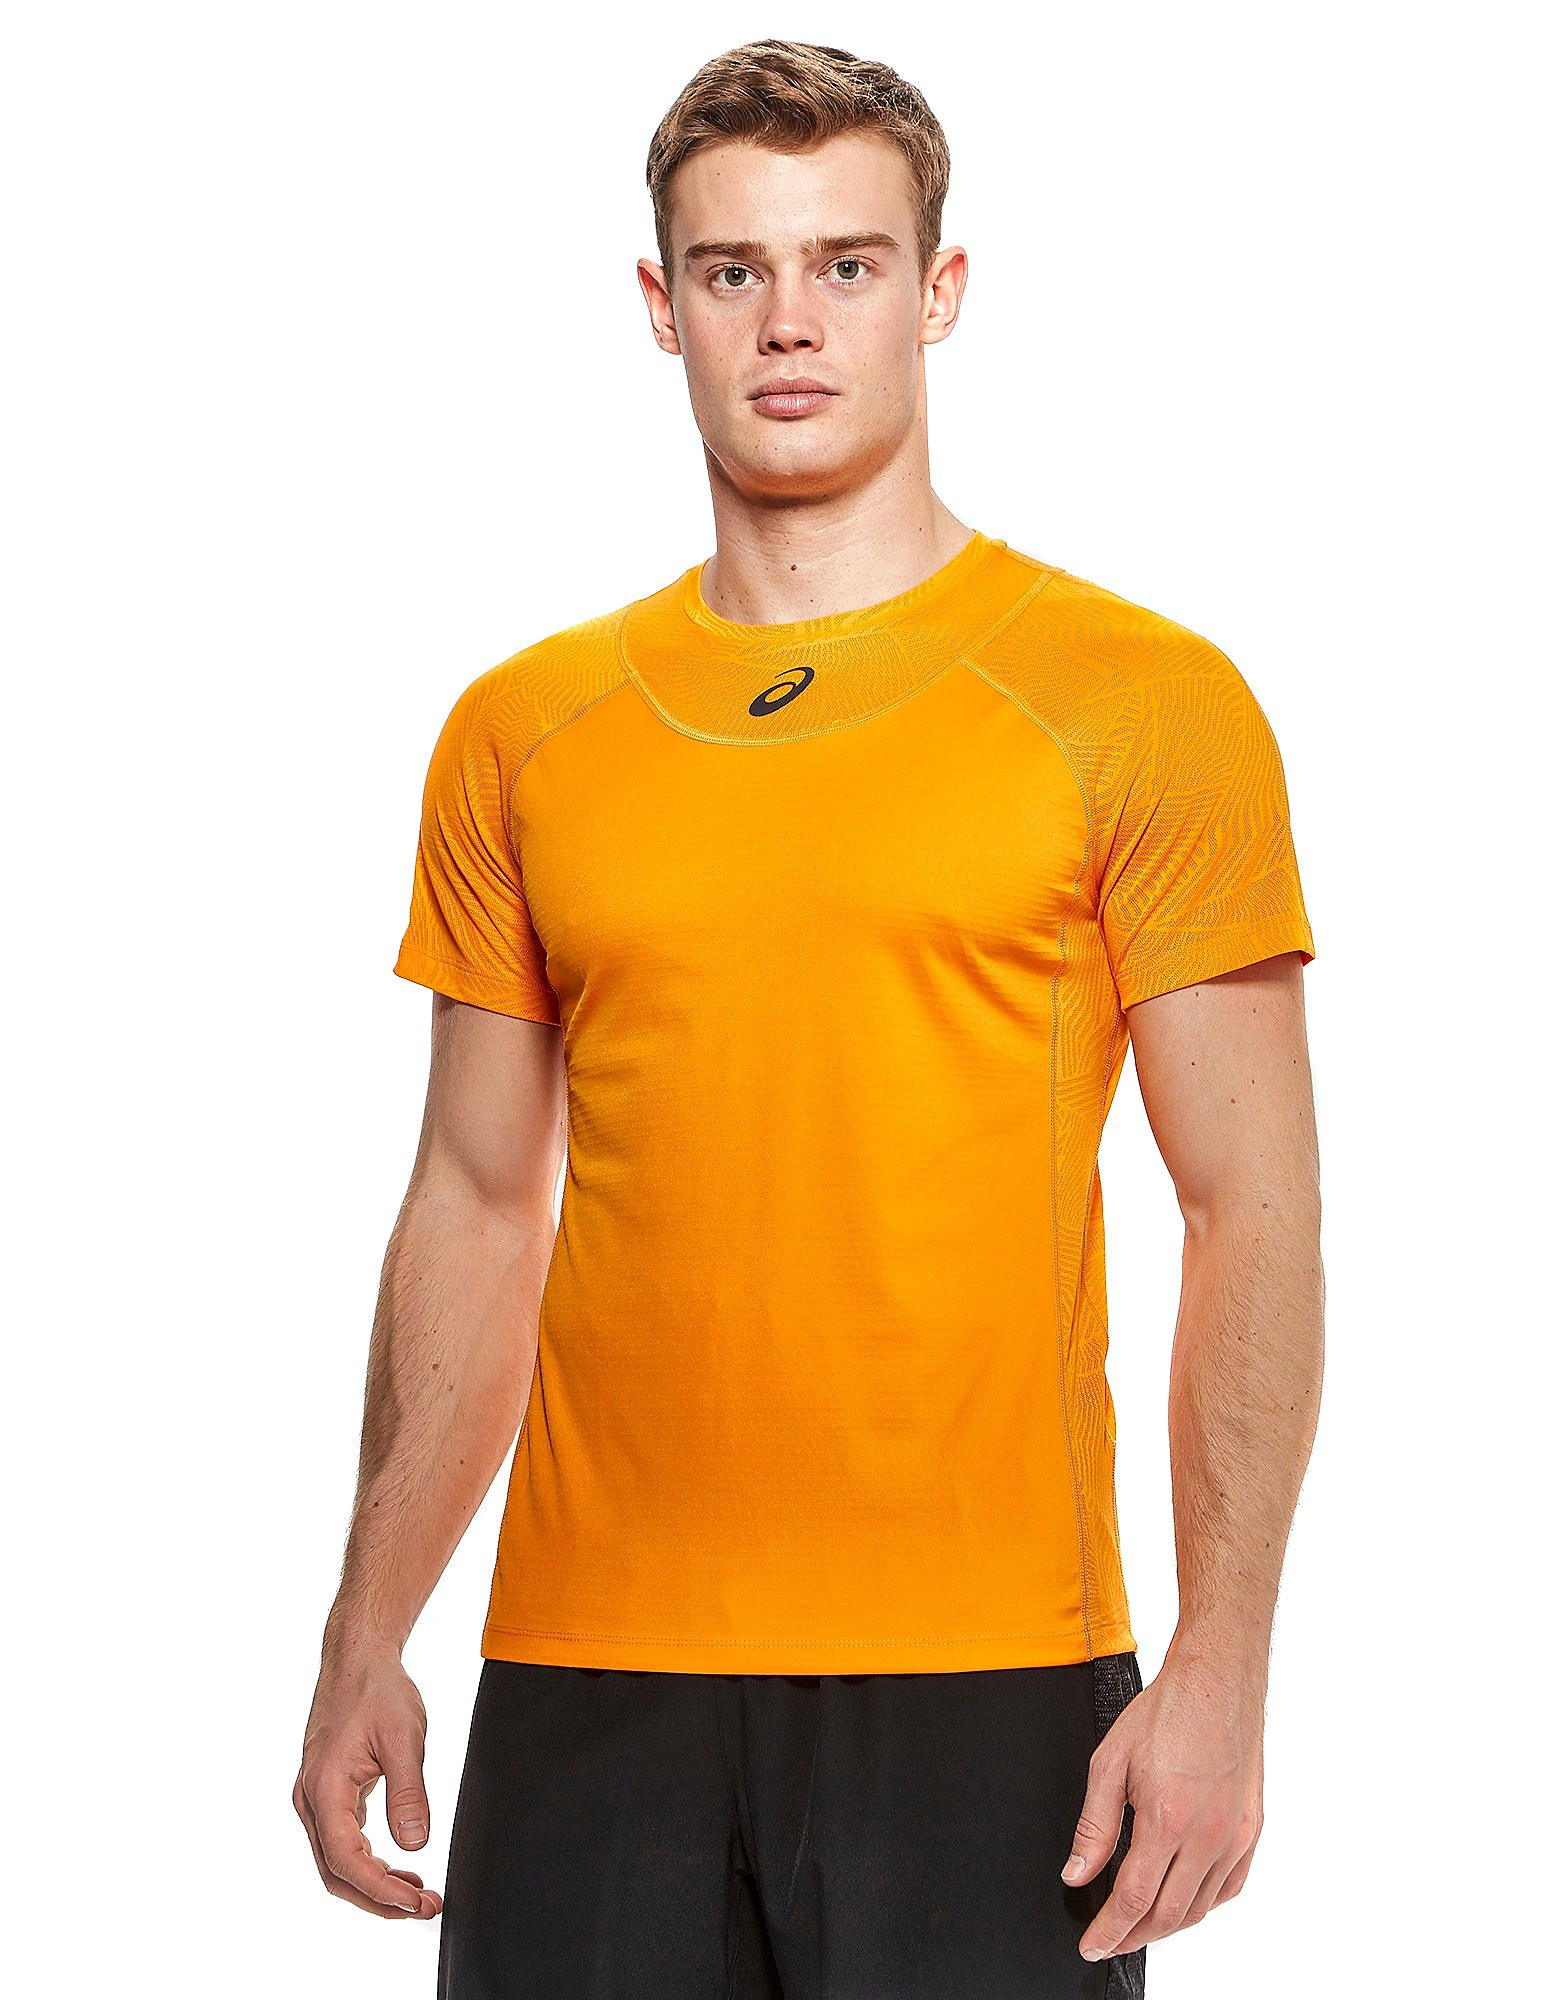 ASICS Athlete Cooling T-Shirt